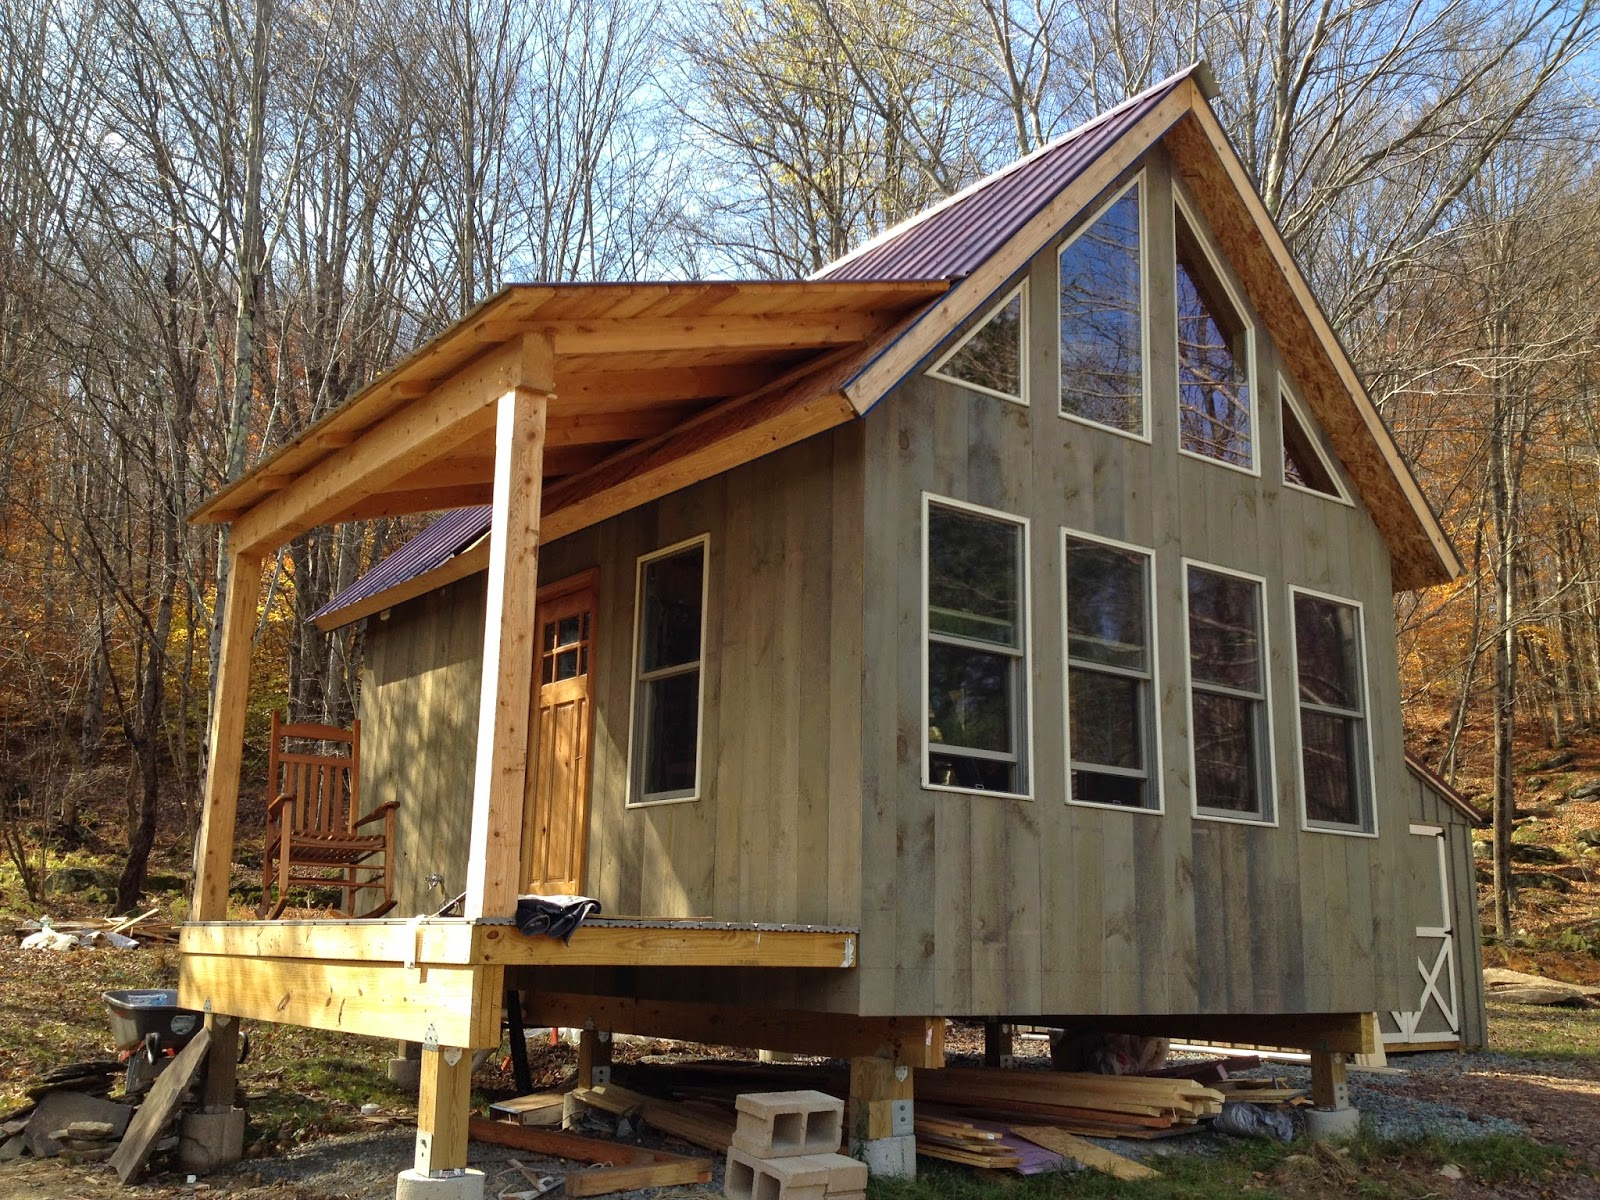 Adam and karen 39 s tiny off grid house Small homes and cabins